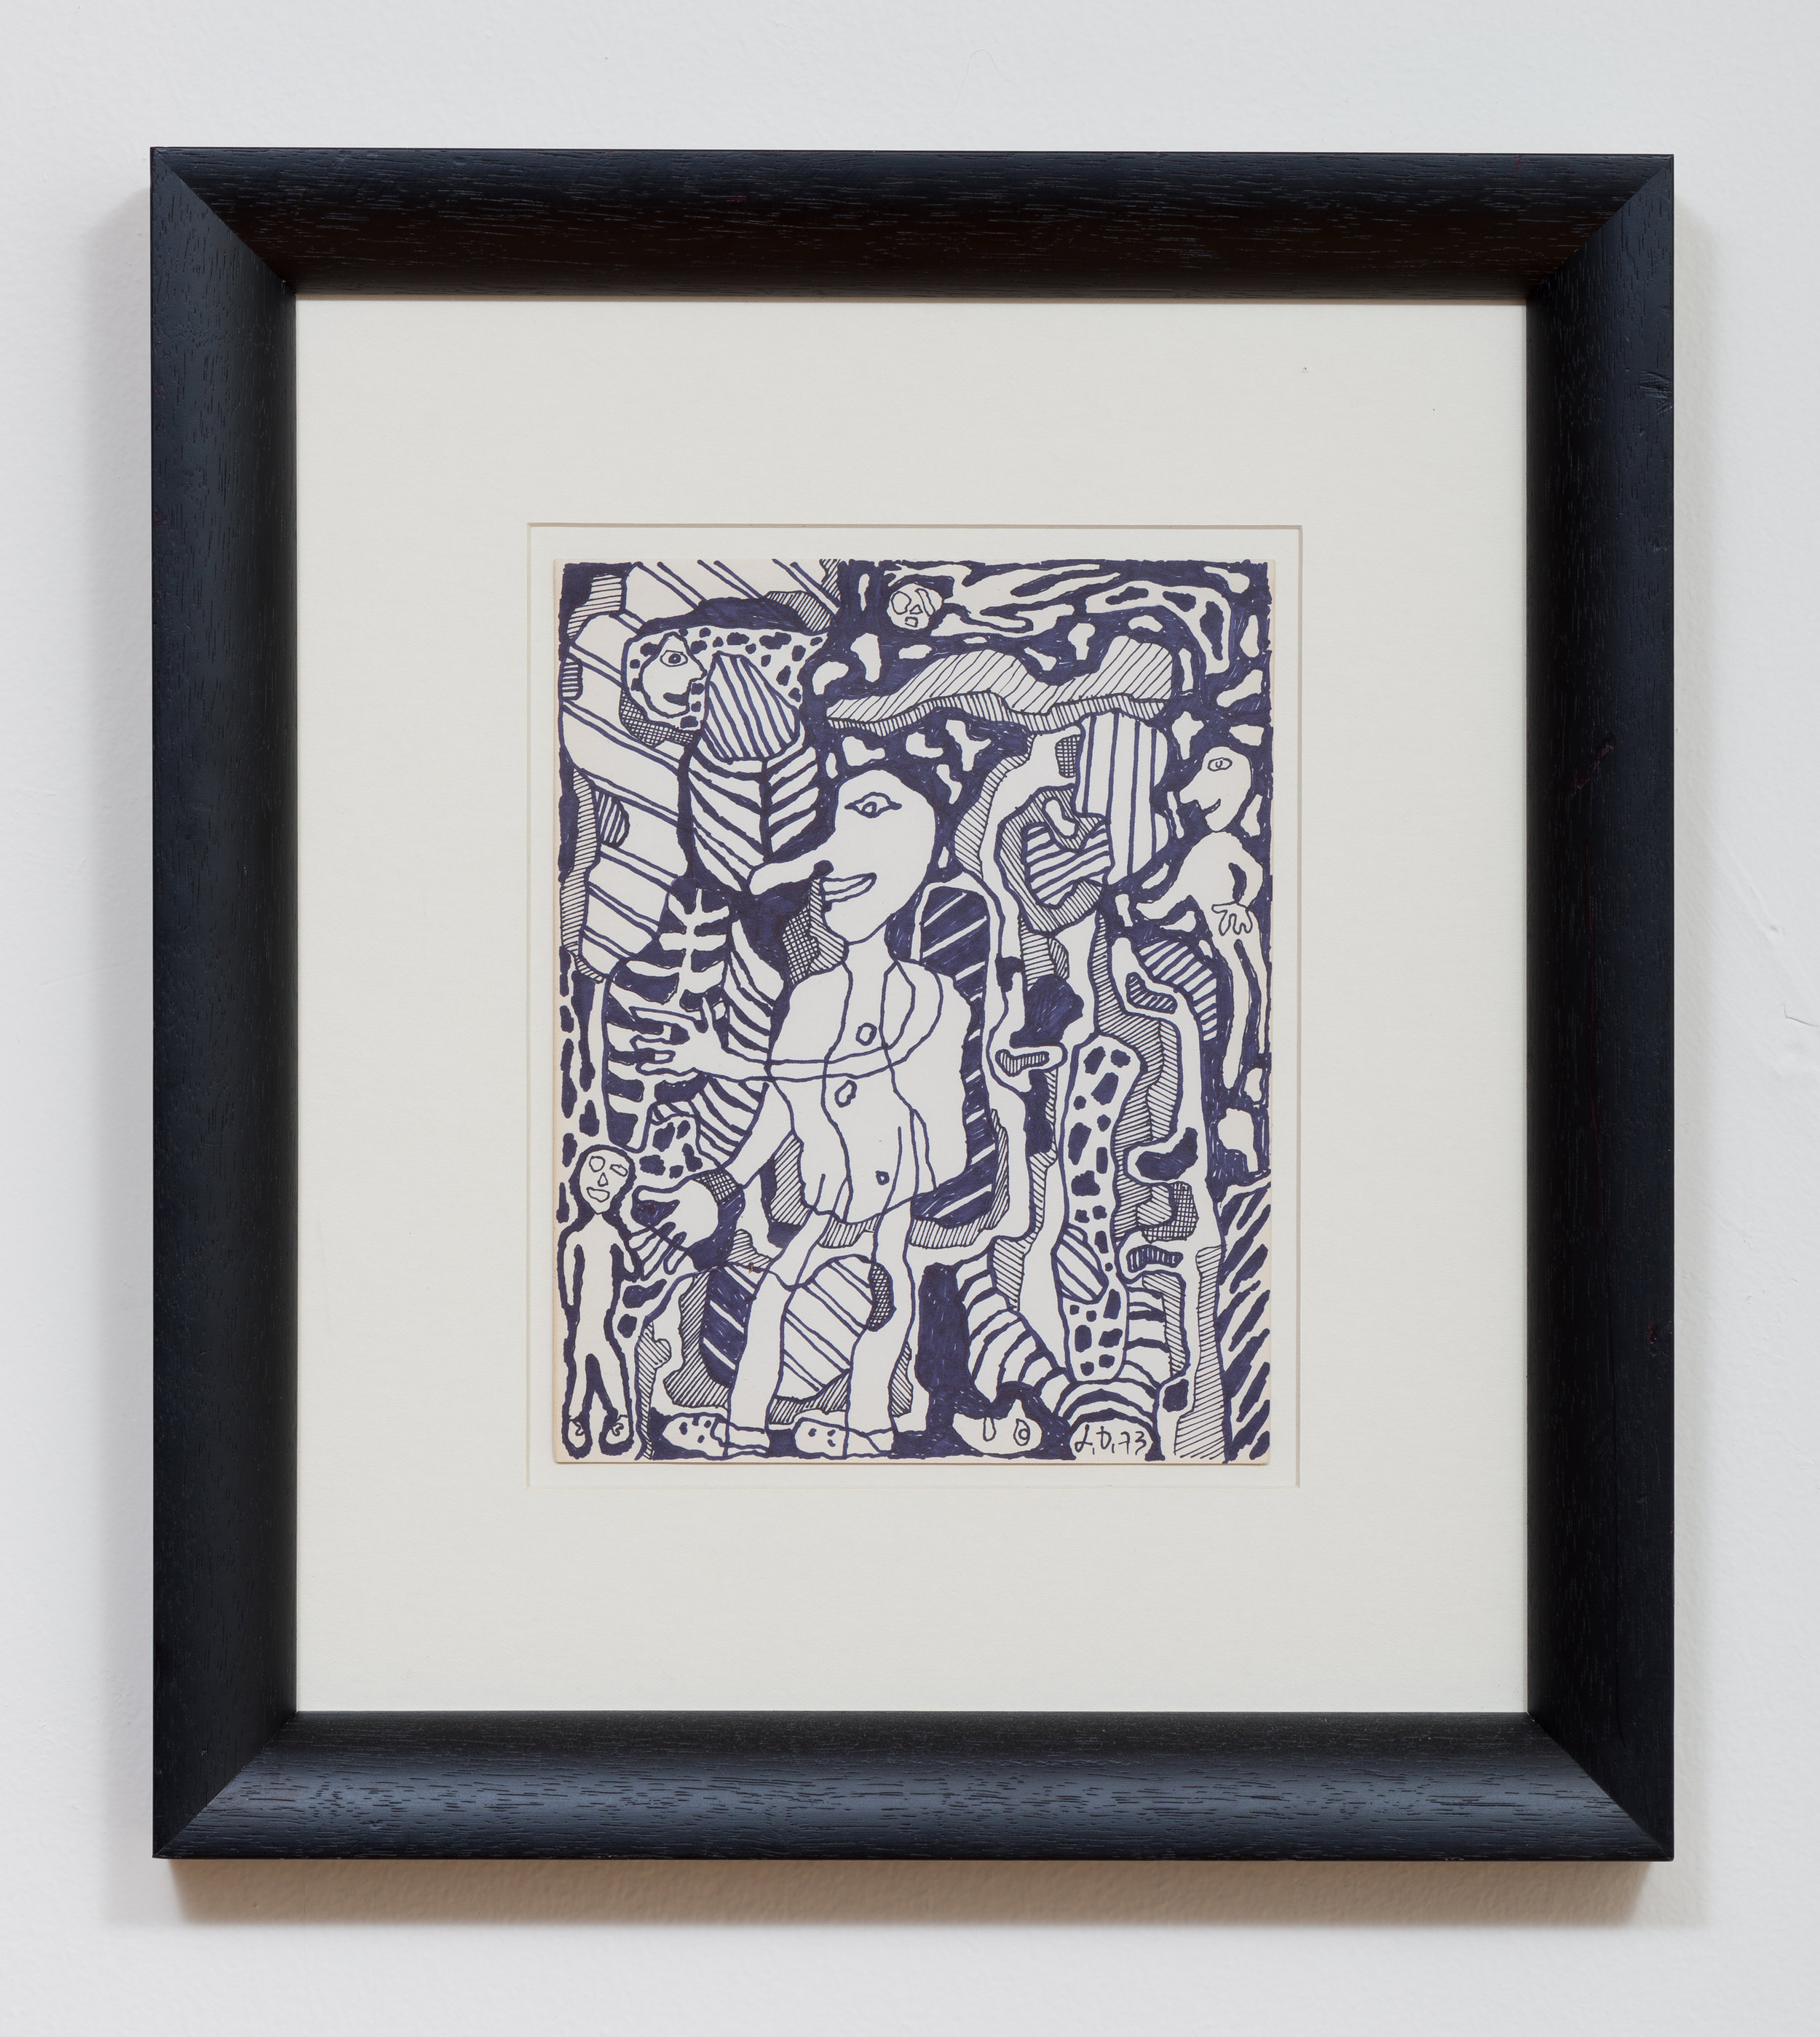 Jean Dubuffet    Untitled   1973 Ink on paper 9.75 x 7.75 inches paper, 18.25 x 16.25 inches framed